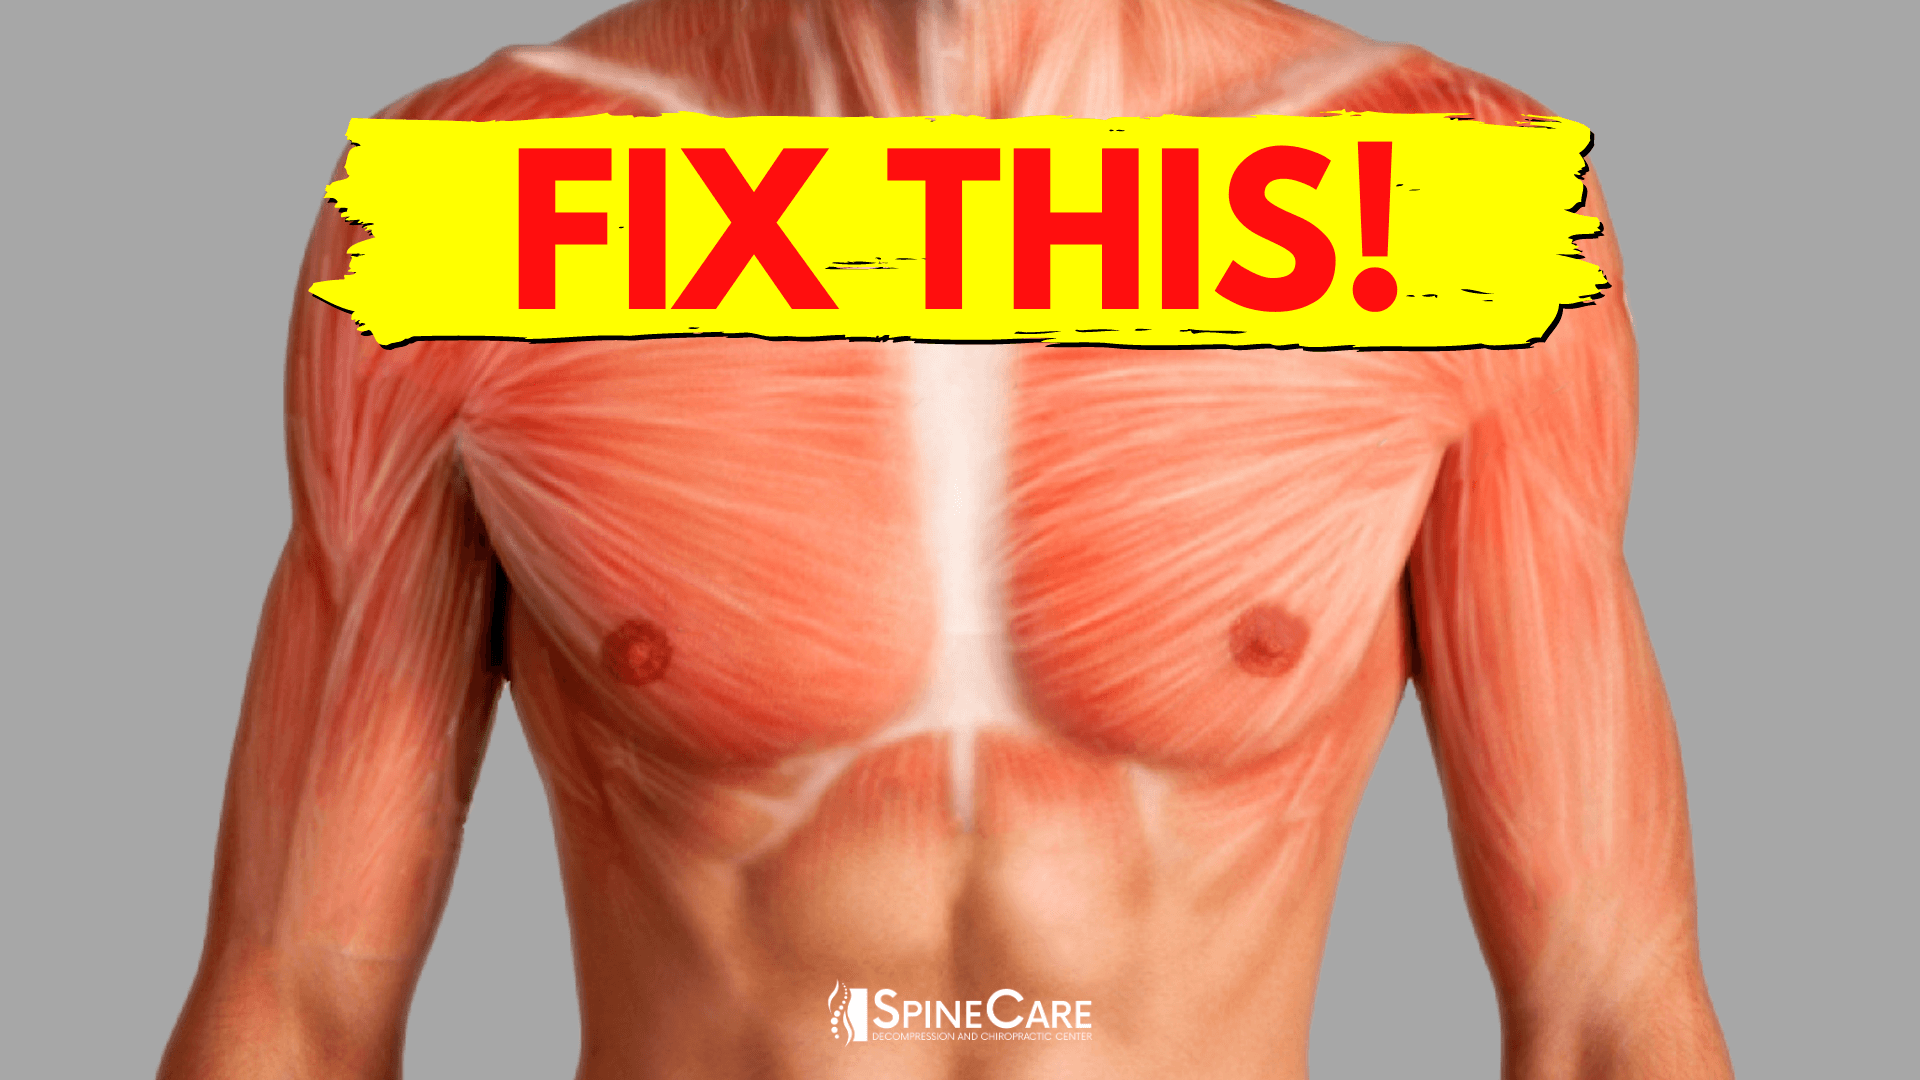 How to Fix Chest Muscle Tightness in 30 SECONDS   SpineCare   St. Joseph, Michigan Chiropractor